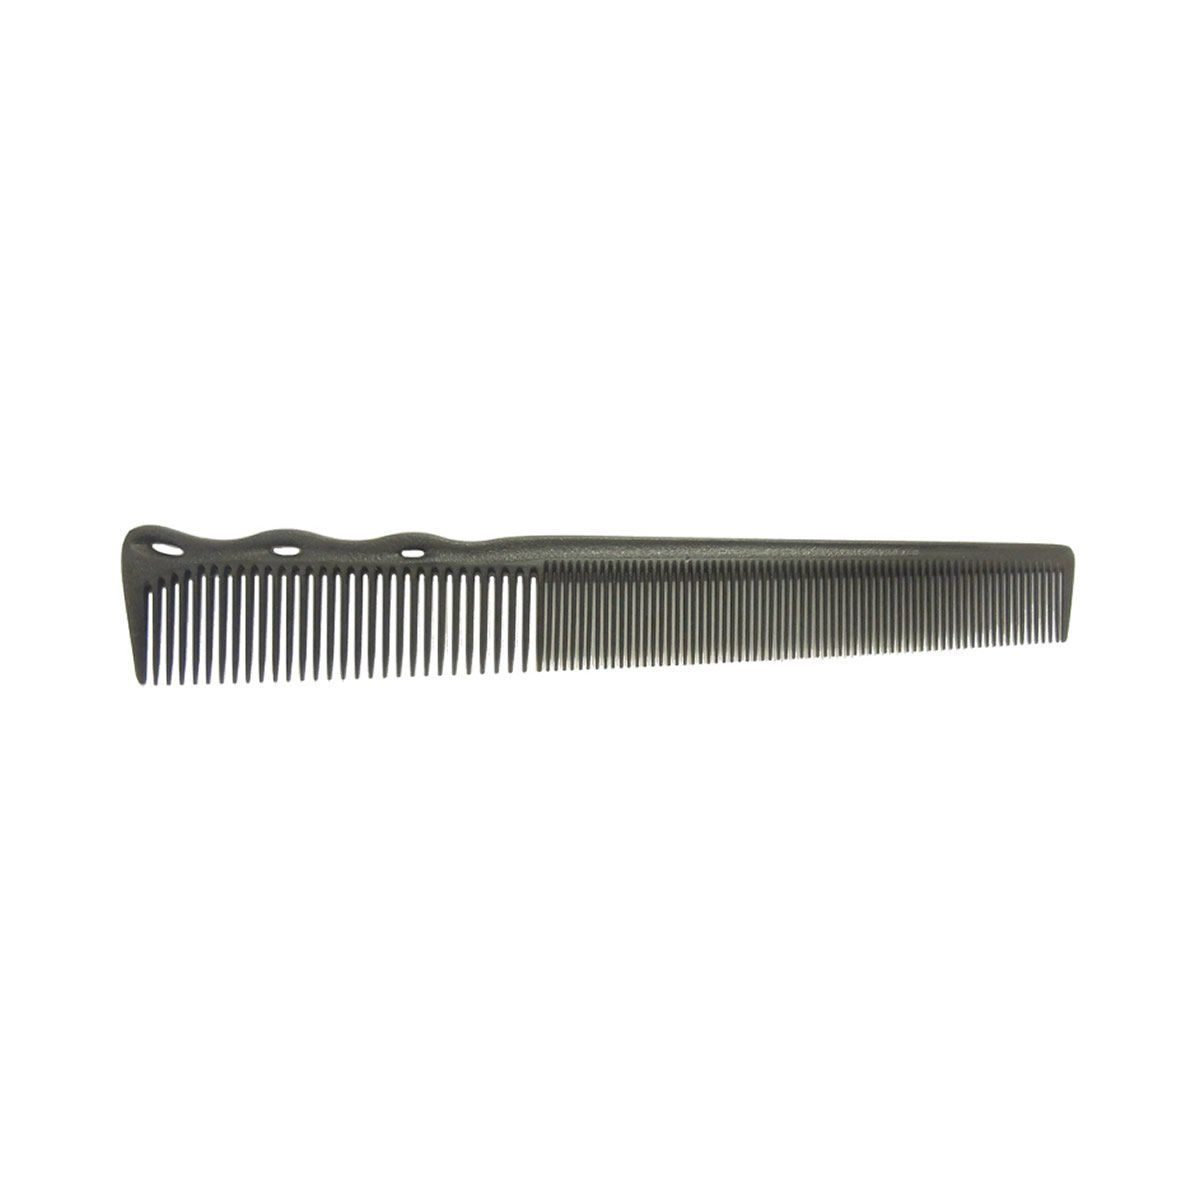 Ys Park Comb 252 Carbon This Is An Amazon Affiliate Link Be Sure To Check Out This Awesome Product Hair Tools Sally Beauty Supply Styling Tools